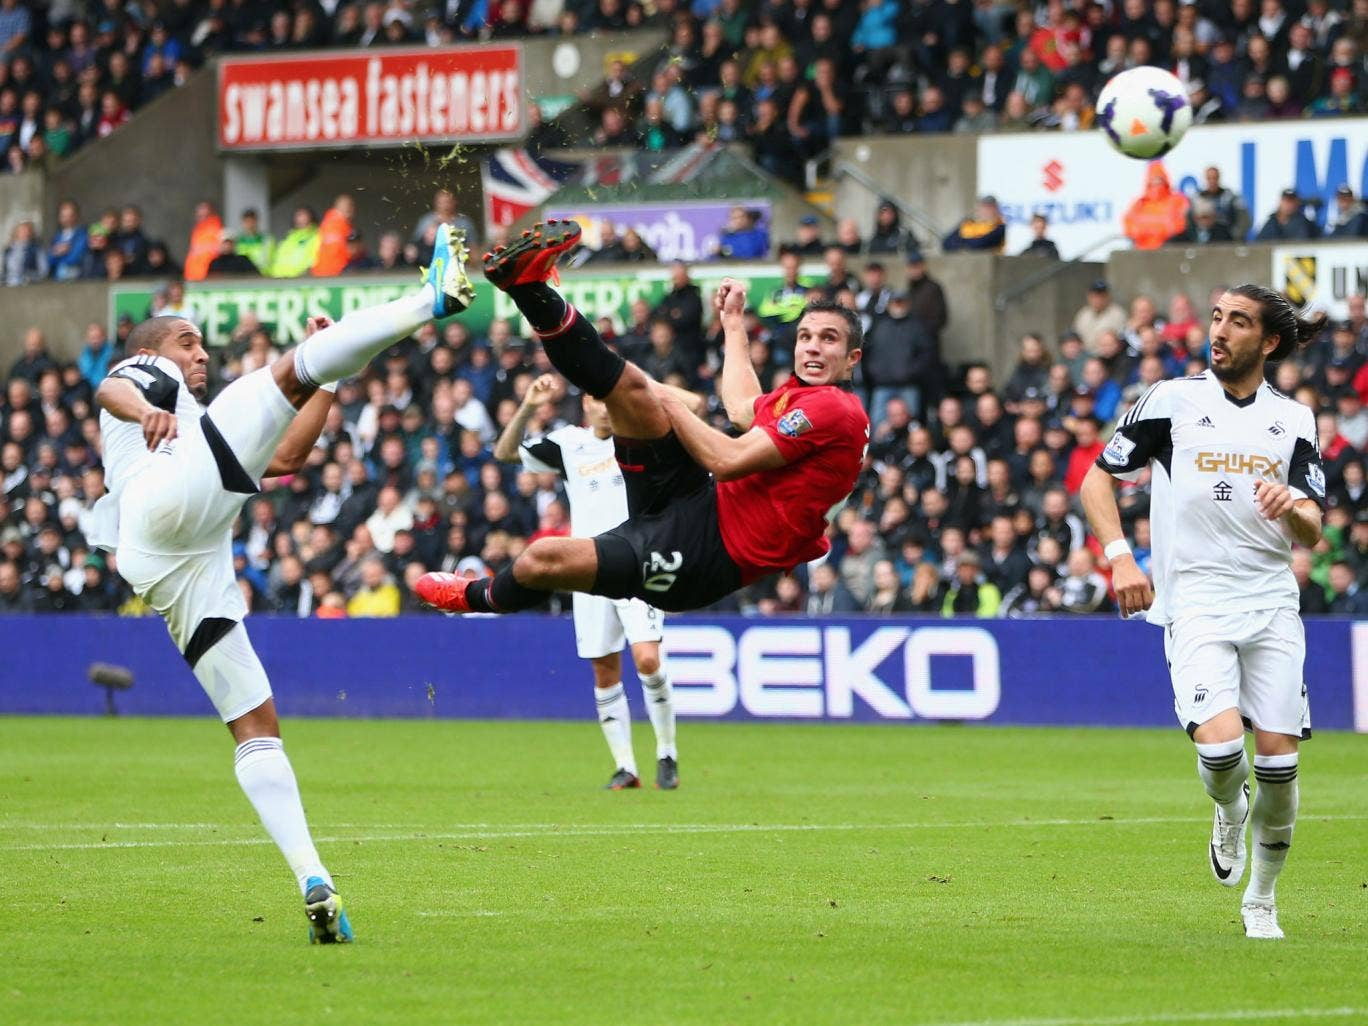 Robin van Persie puts Manchester United ahead with an acrobatic effort in the champions' win